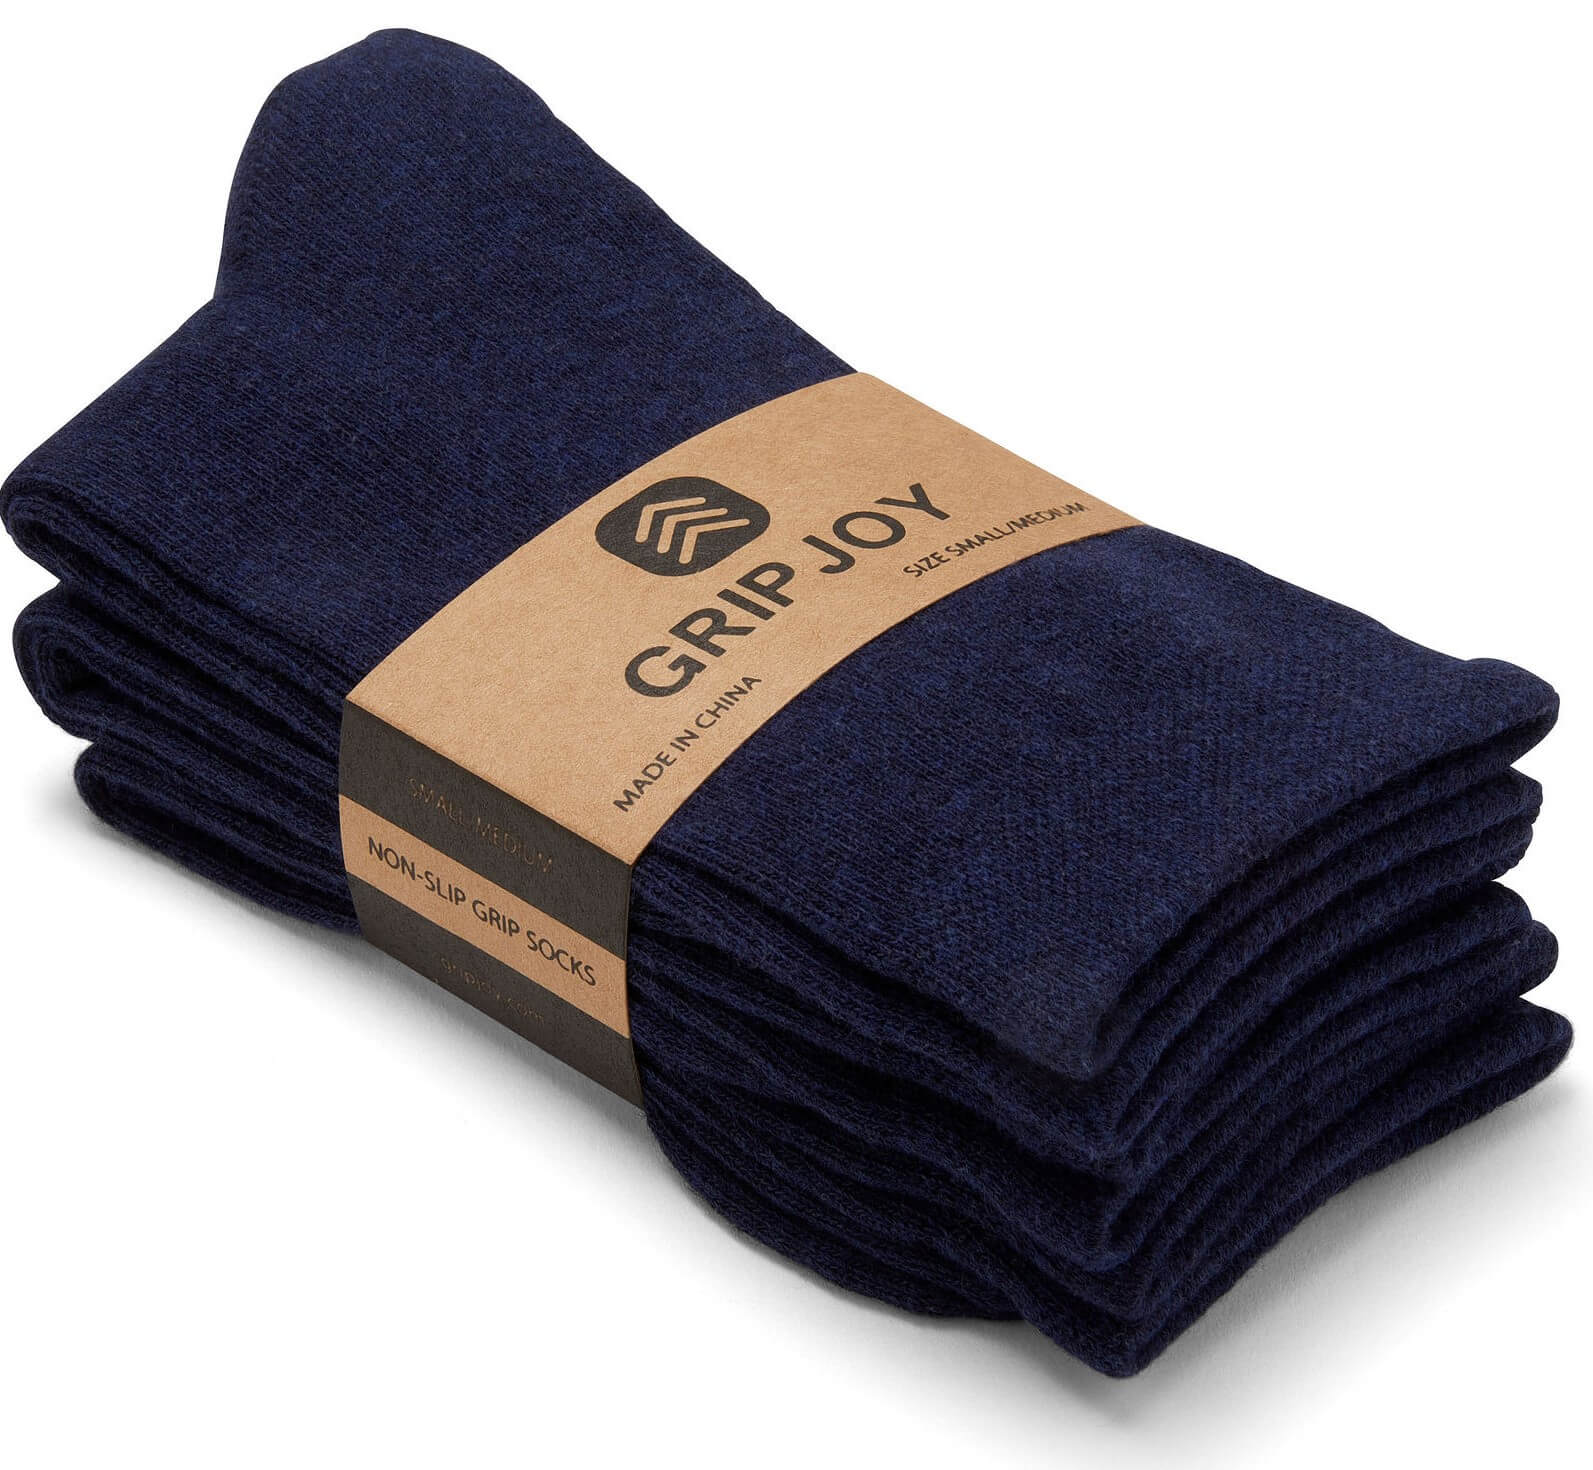 Gripjoy Women's Crew Grip Socks Navy 3-Pack - Gripjoy Socks